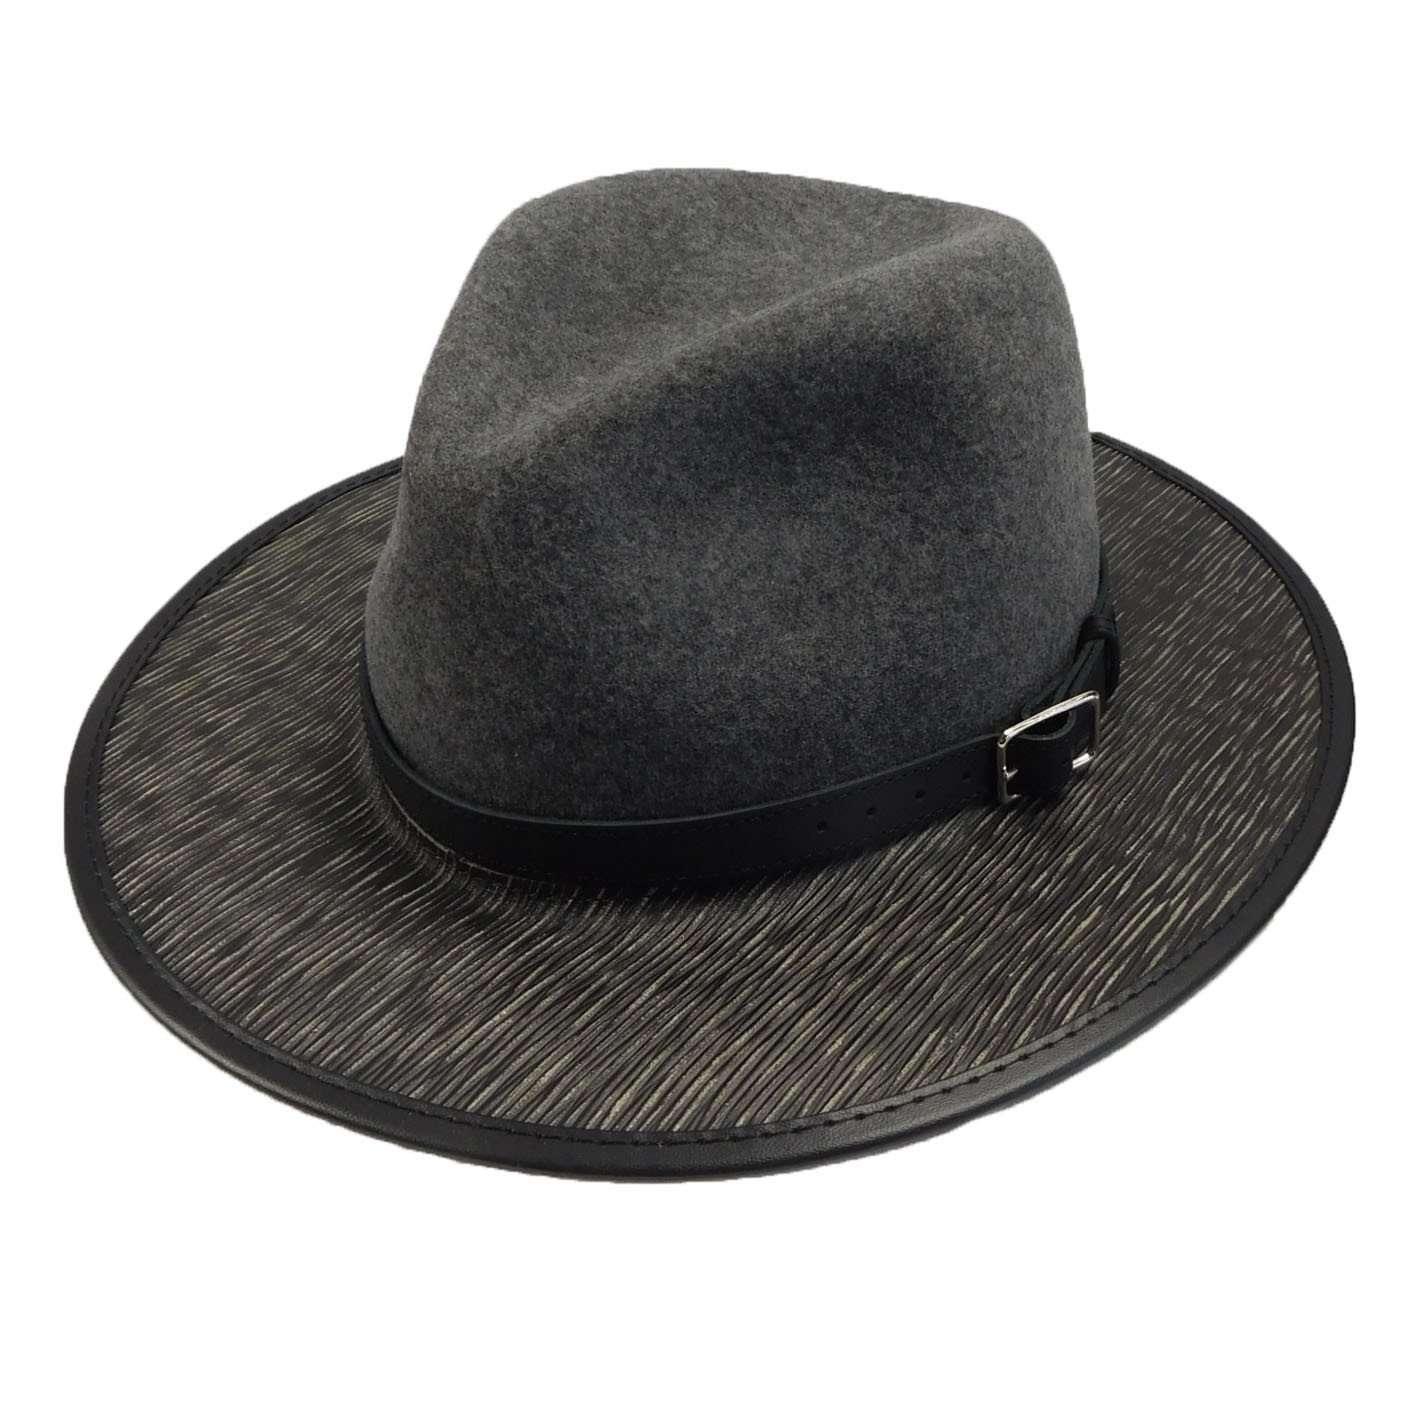 Summit Wool and Leather Outback Hat -Granite - SetarTrading Hats